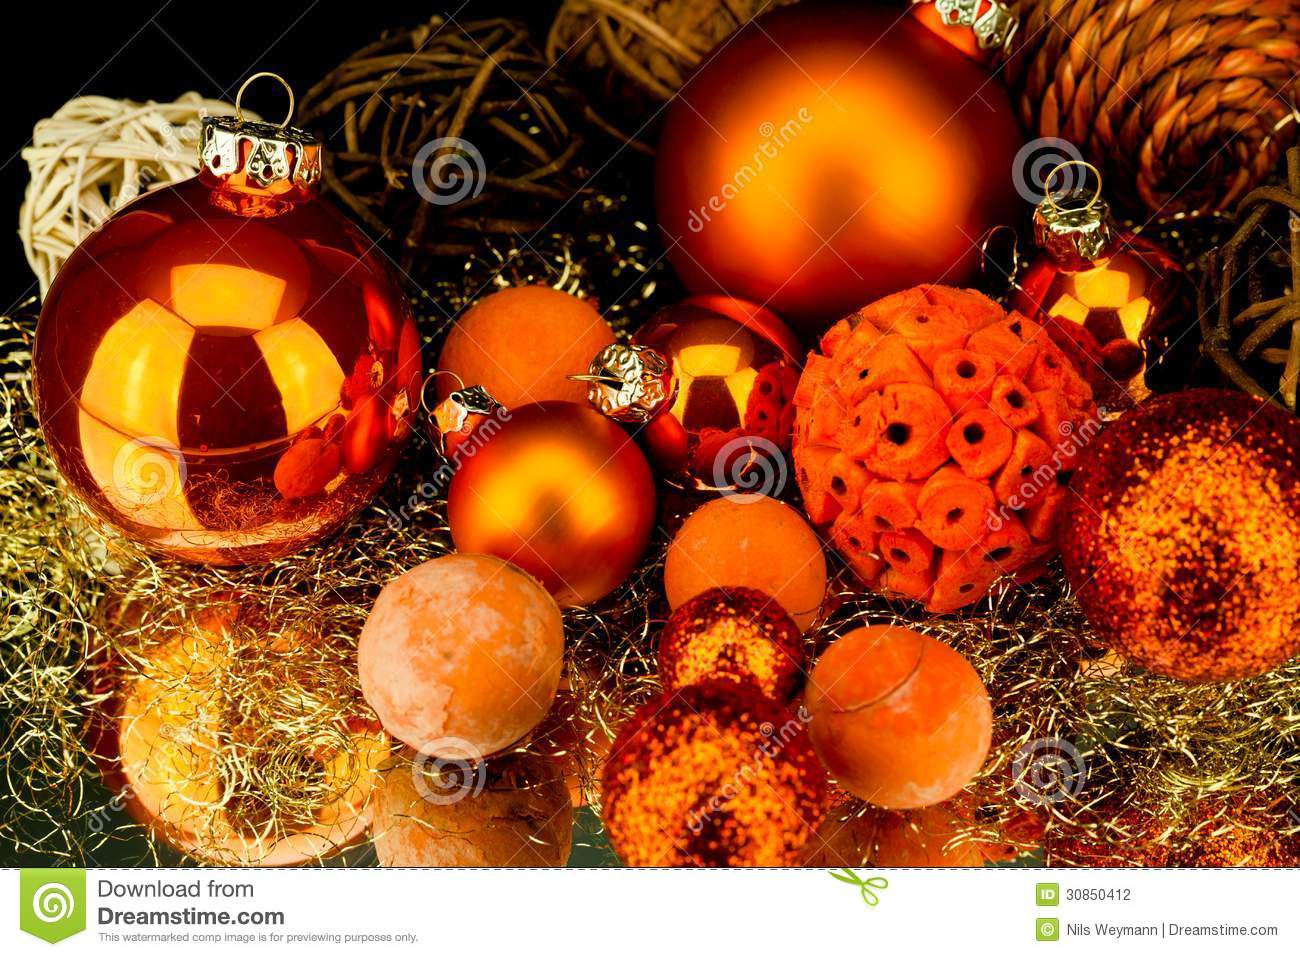 #C49107 Christmas Decoration In Orange On Black Stock Photography  5283 decoration table noel orange 1300x957 px @ aertt.com